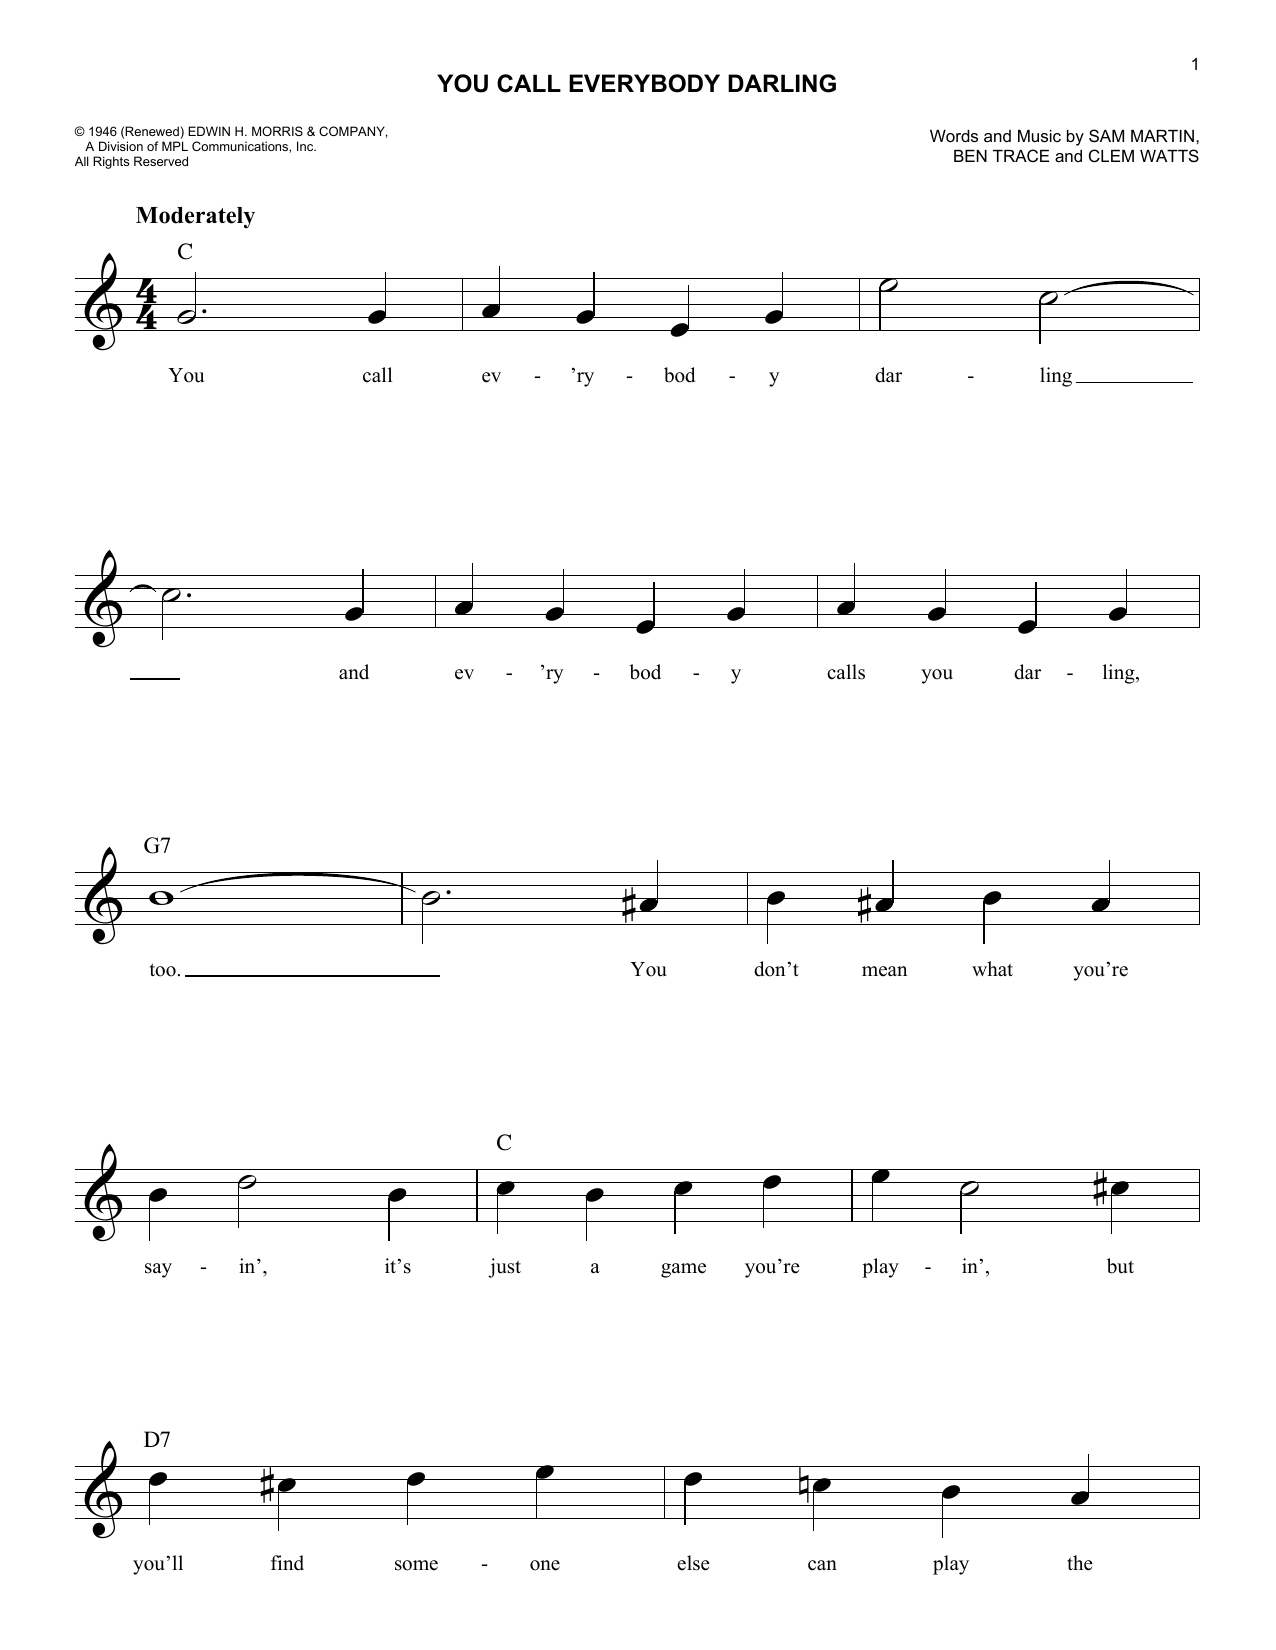 Ben Trace You Call Everybody Darling sheet music notes and chords. Download Printable PDF.